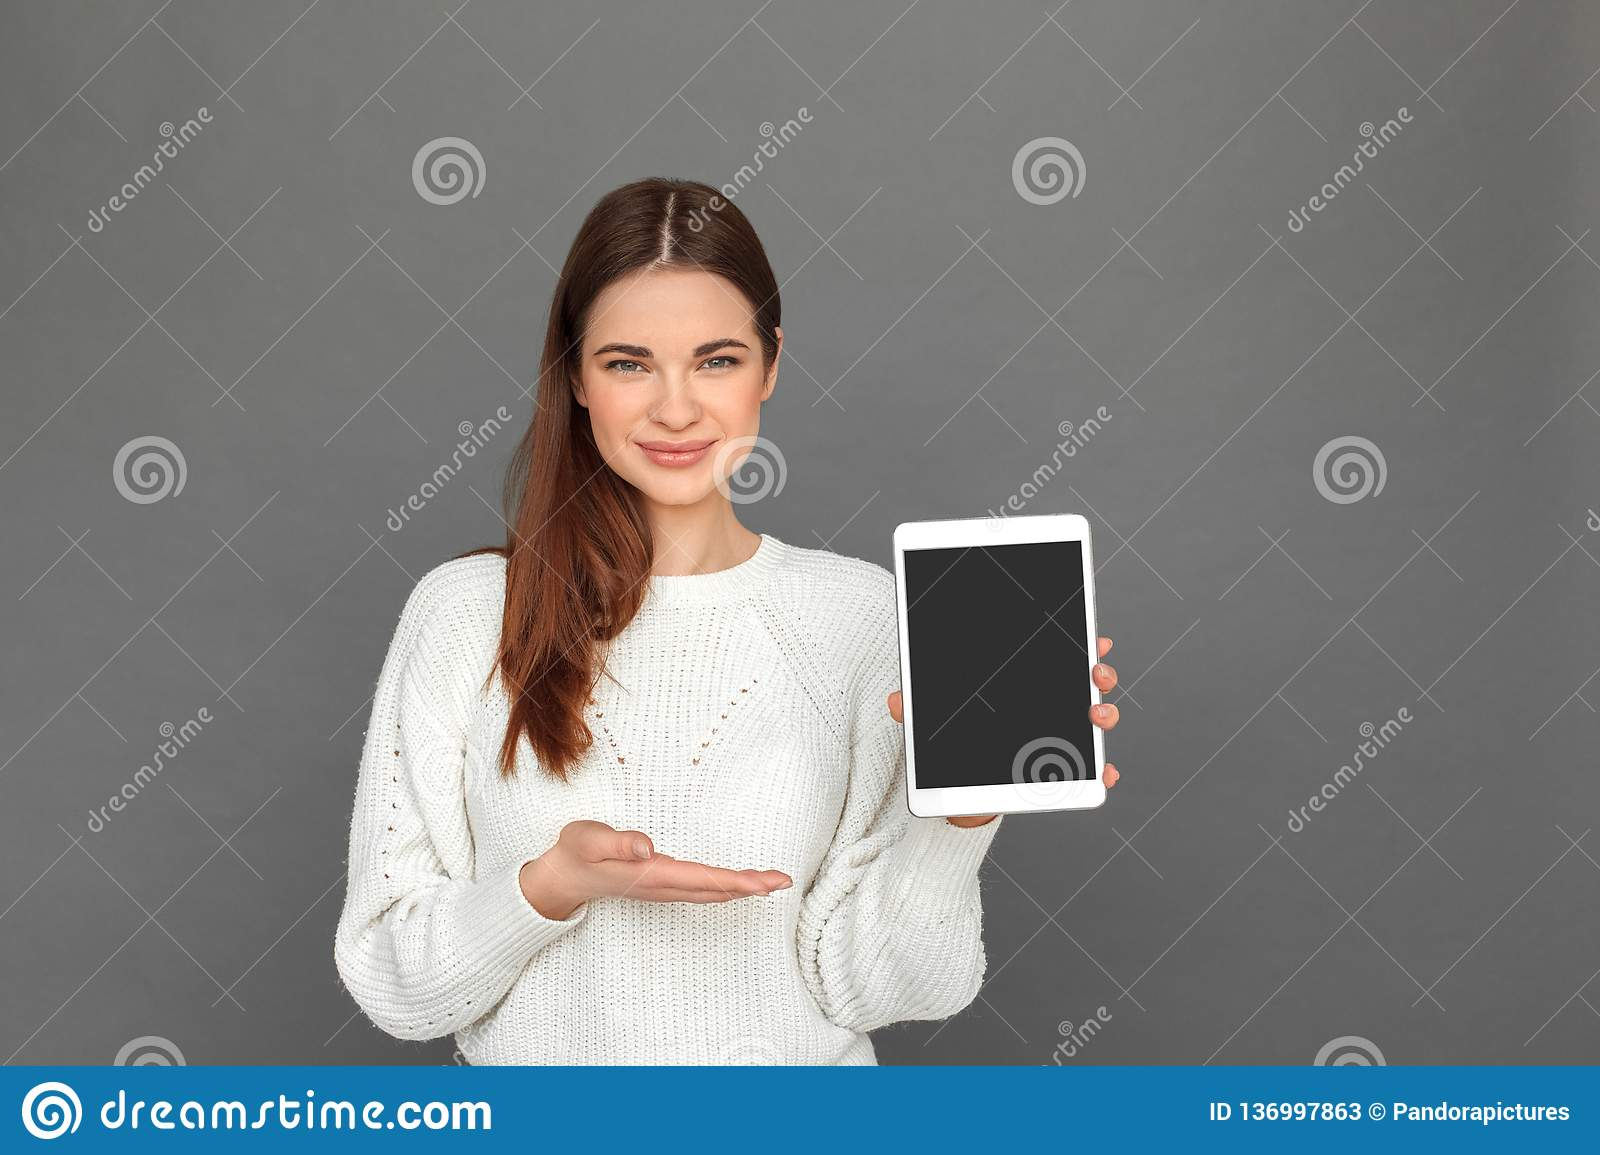 Freestyle. Young girl standing on grey showing screen of digital tablet smiling friendly